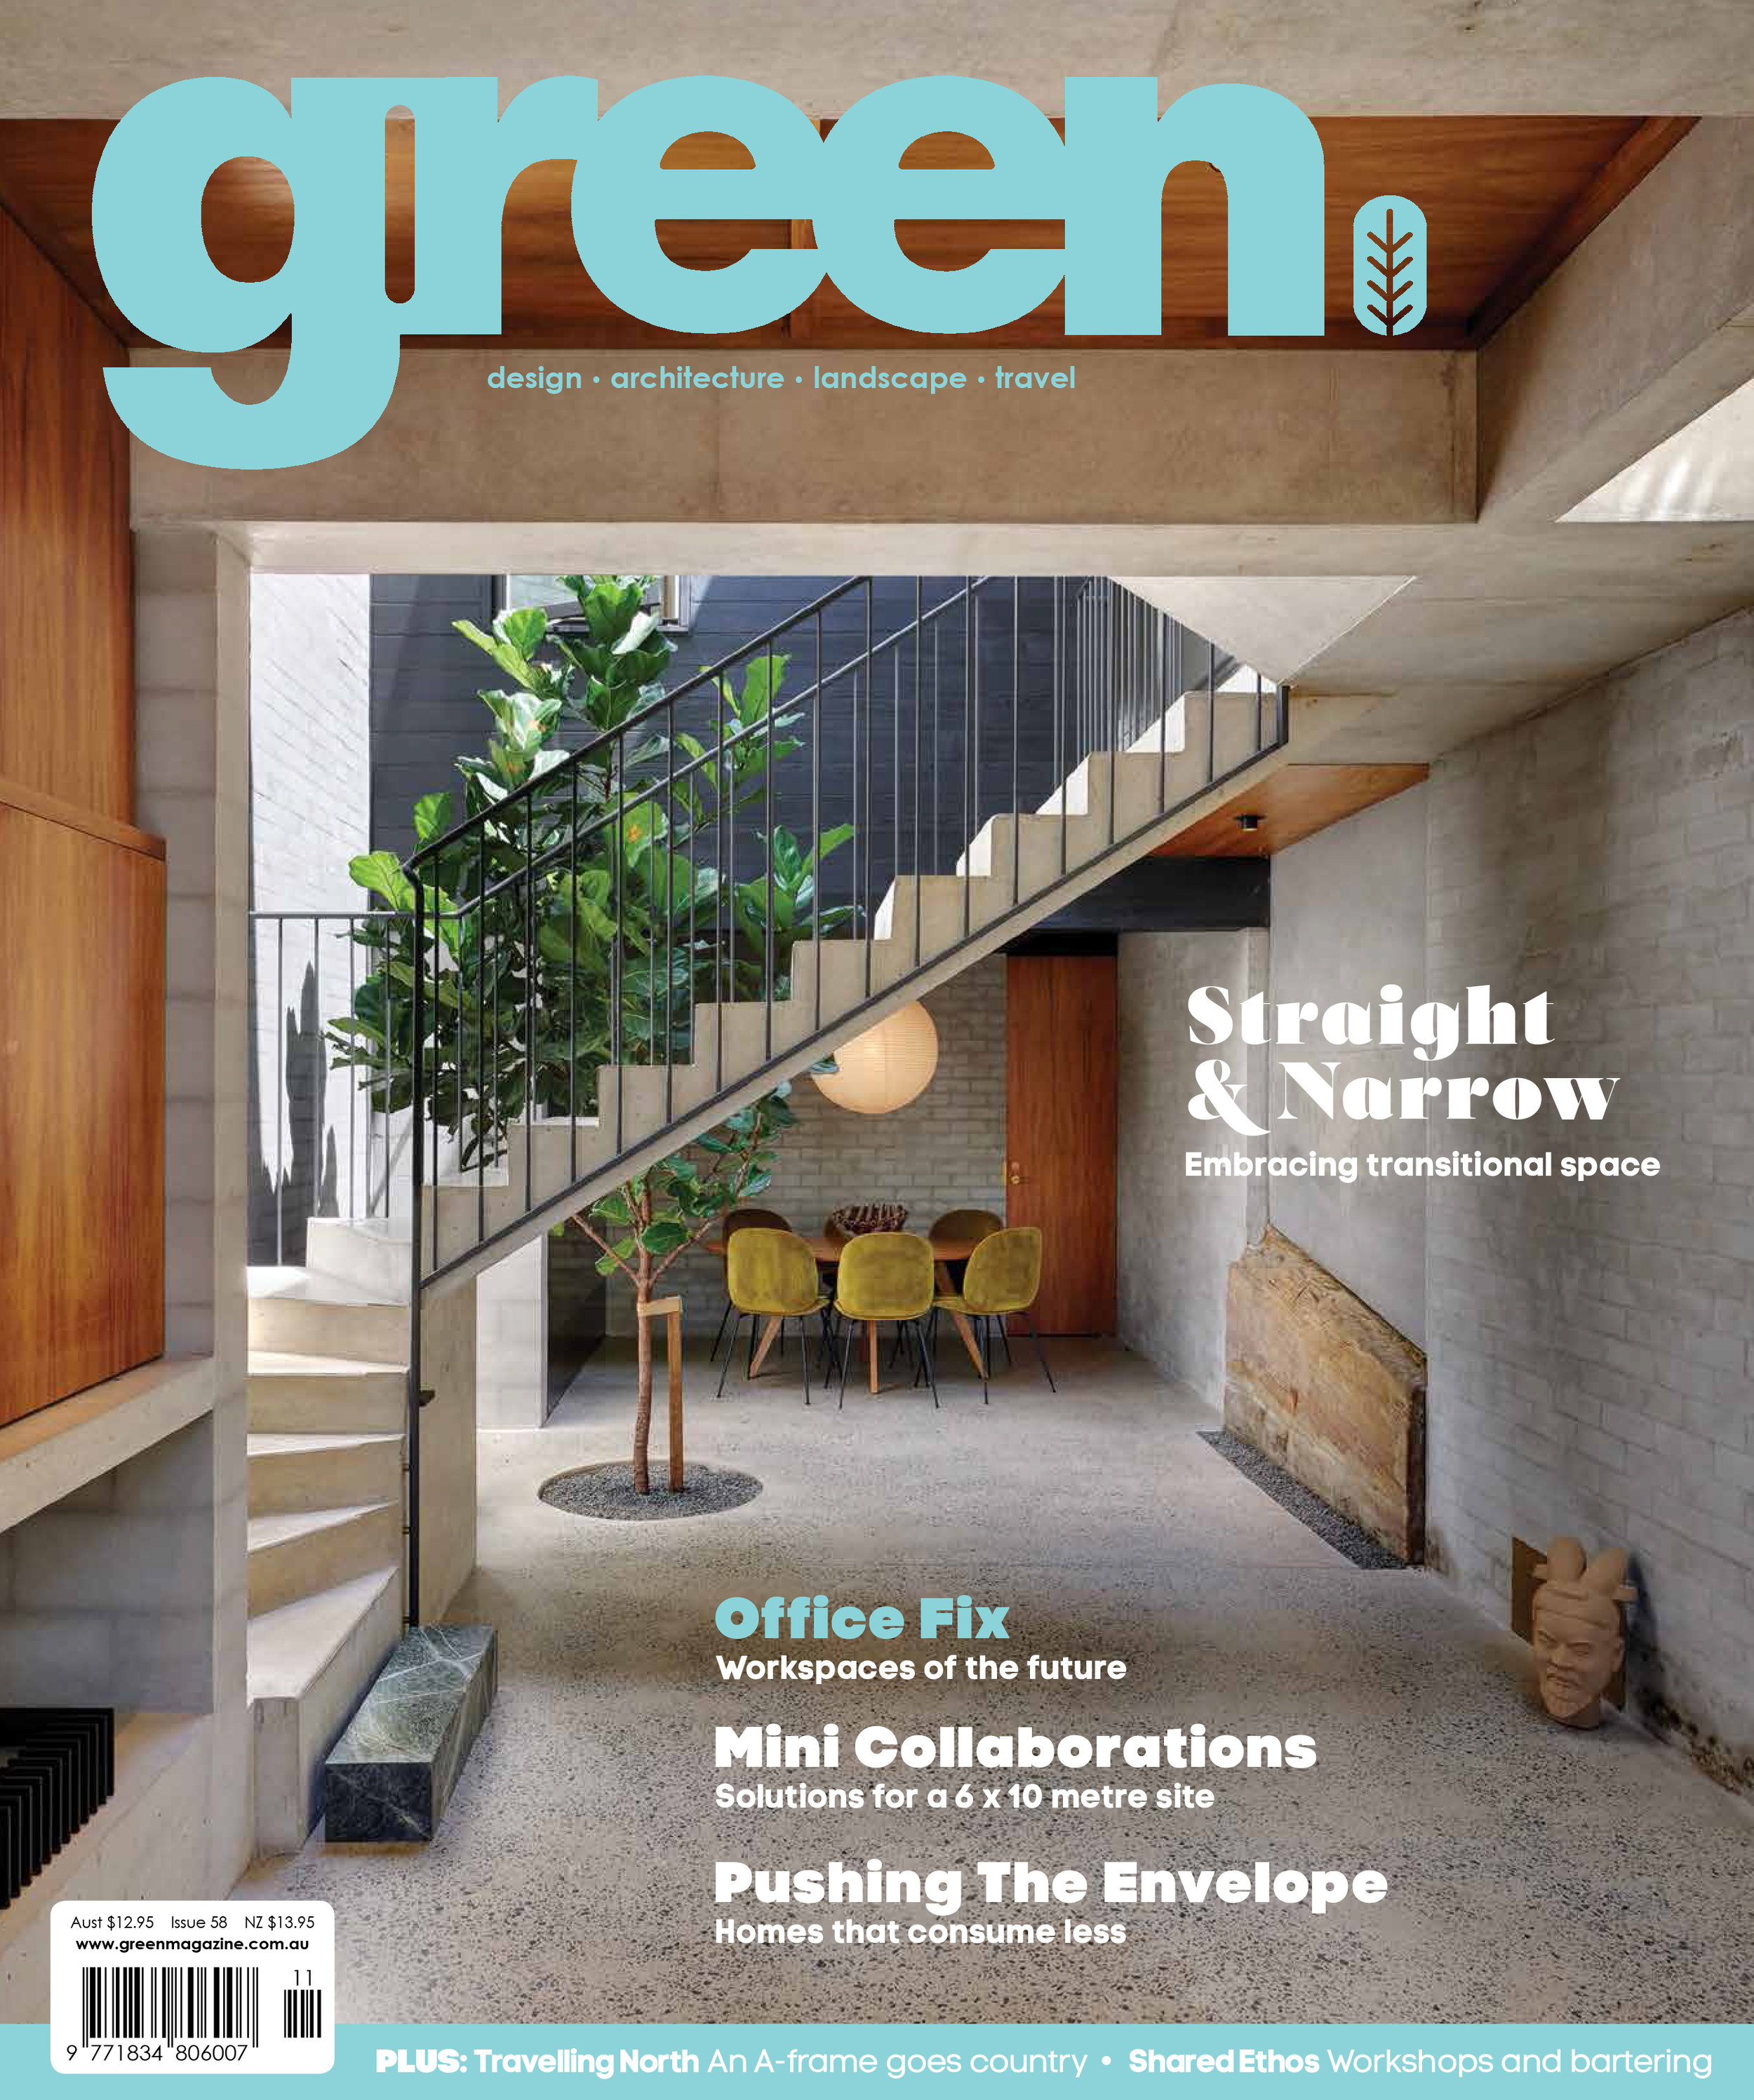 2017_Green Magazine Cover.jpg